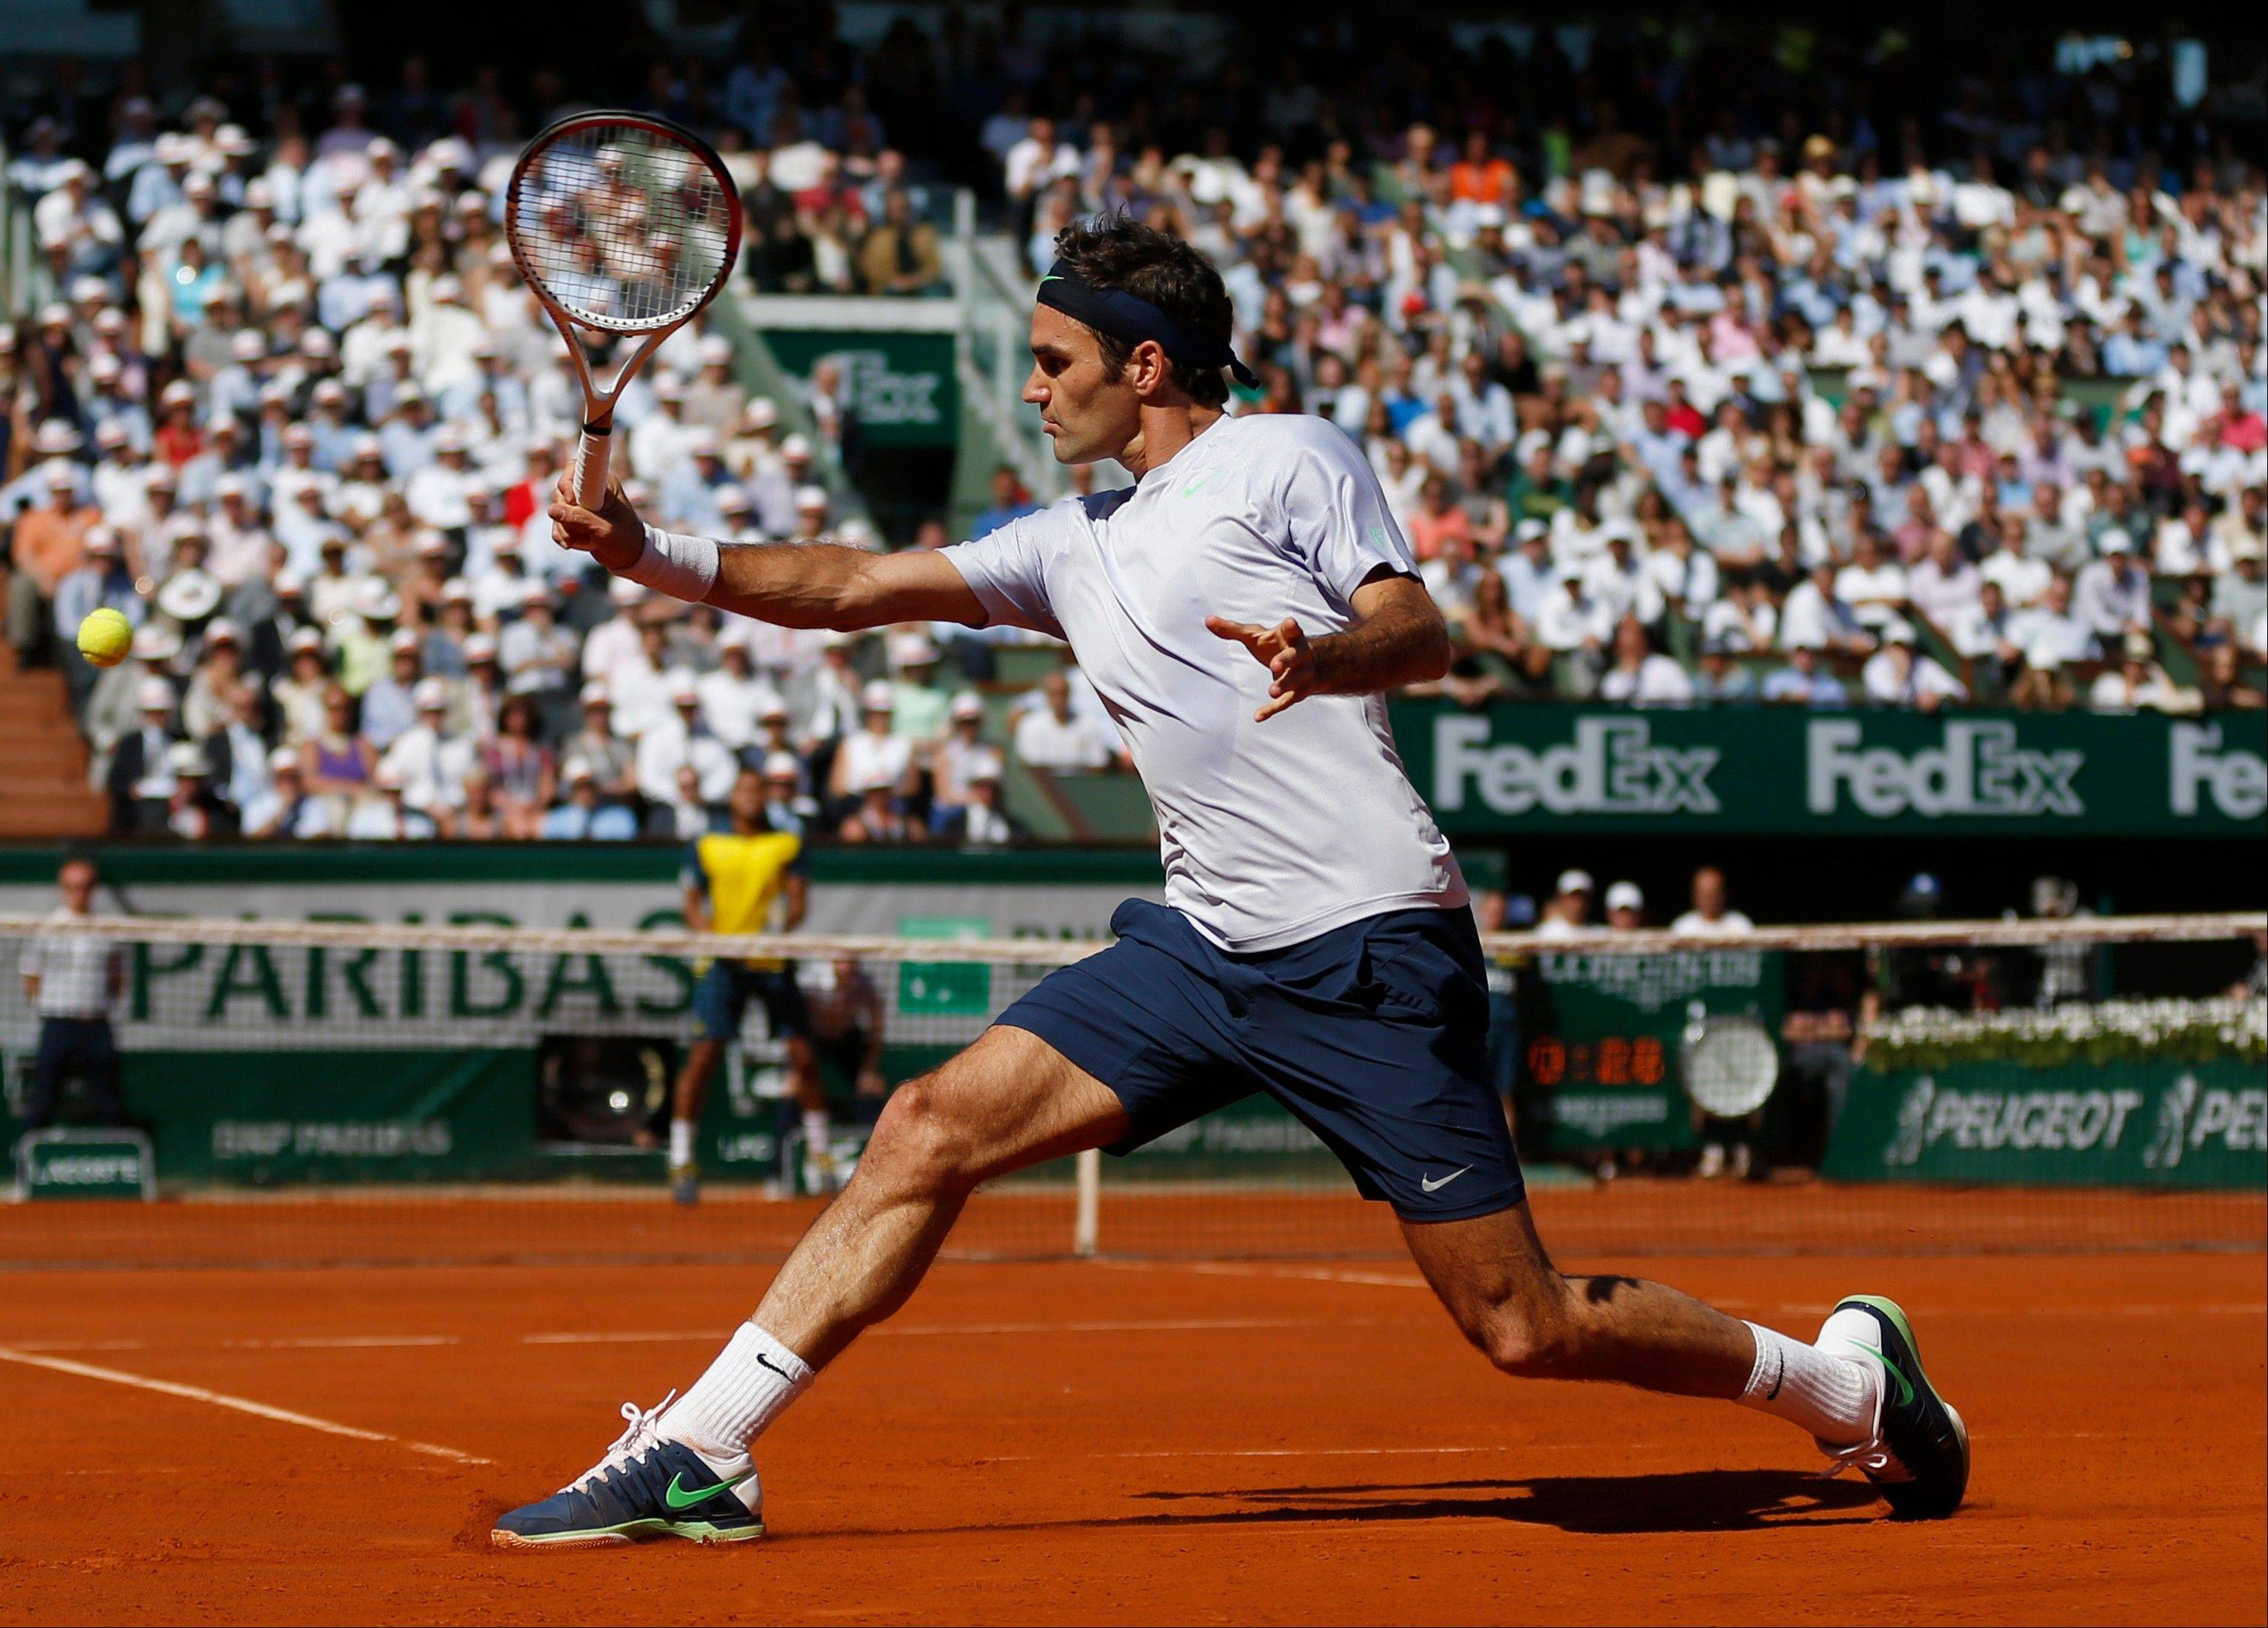 Switzerland�s Roger Federer returns the ball to France�s Jo-Wilfried Tsonga during their quarterfinal match of the French Open tennis tournament at the Roland Garros stadium Tuesday, June 4, 2013 in Paris.